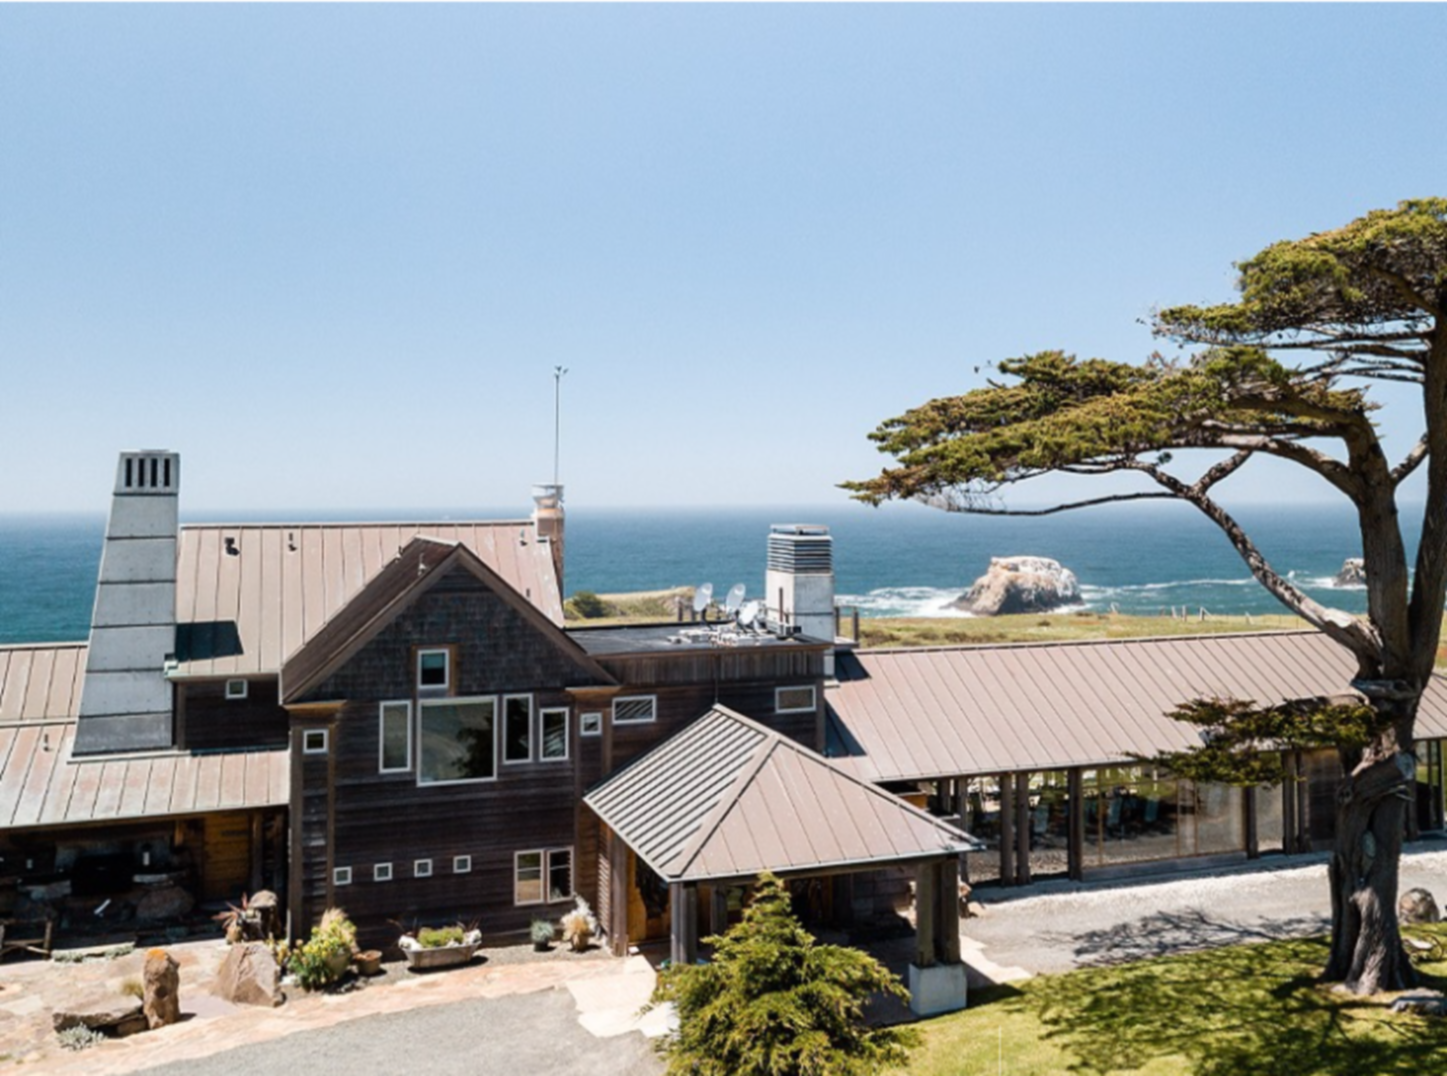 A house with trees in the background at The Inn at Newport Ranch.